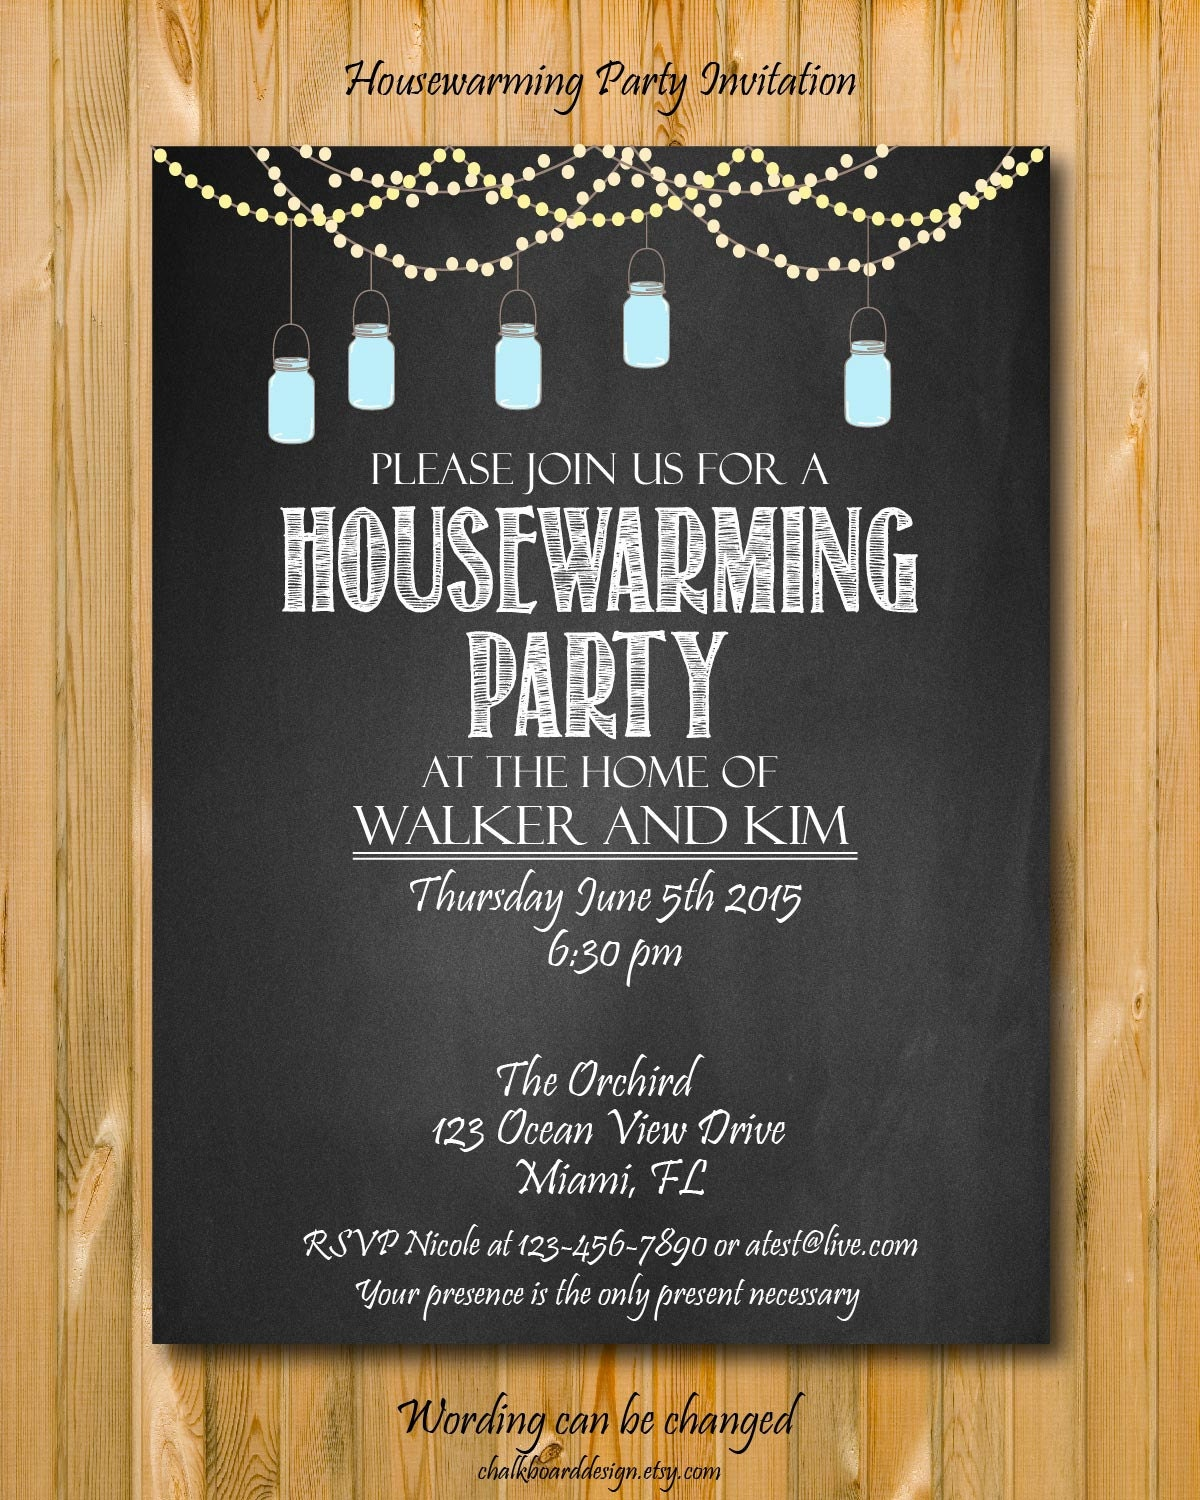 Housewarming party invitation DIY Party invitation